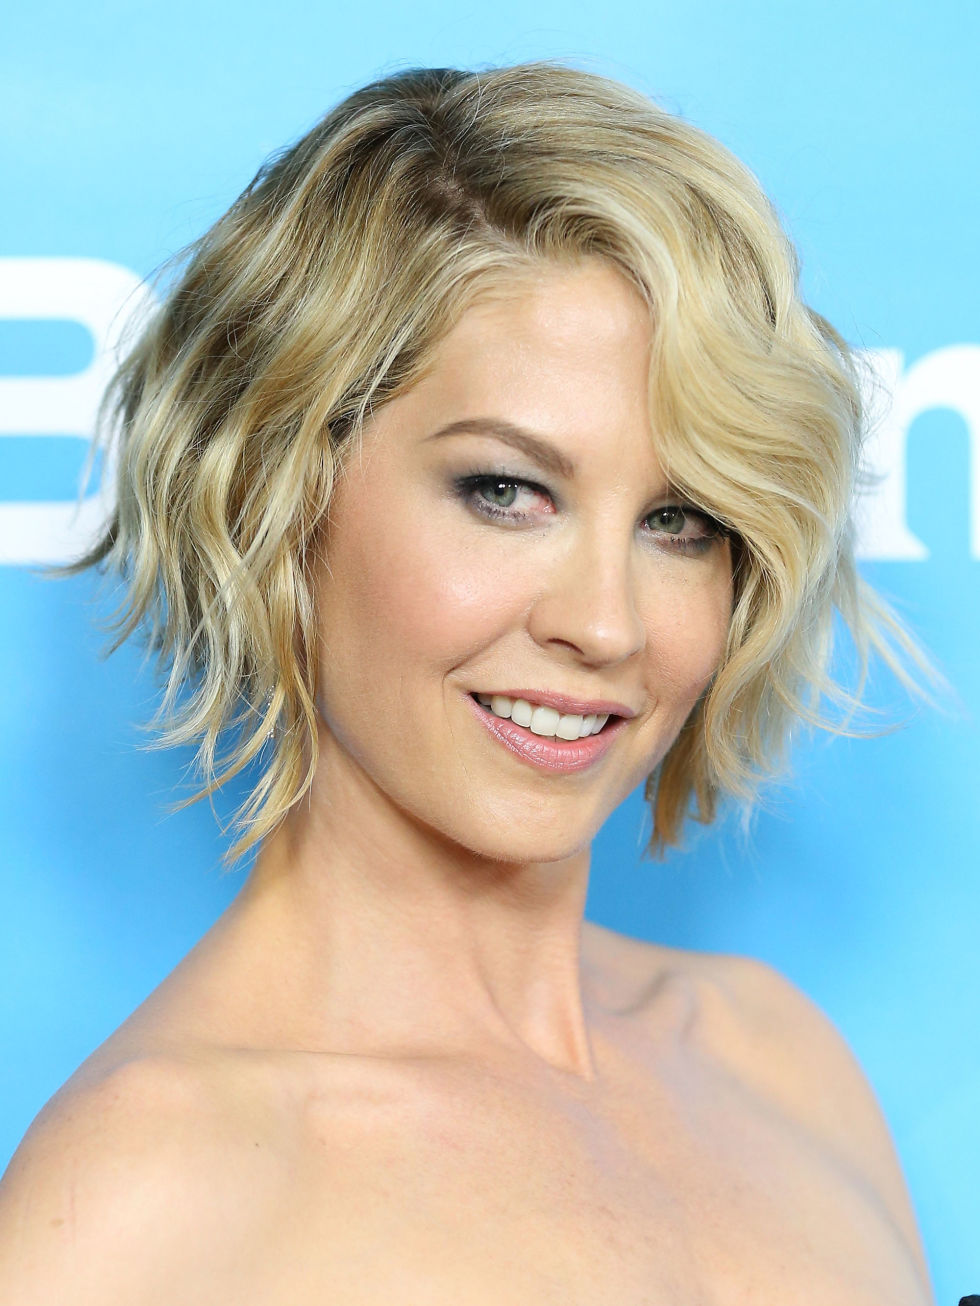 Tremendous How To Grow Out Your Hair Celebs Growing Out Short Hair Short Hairstyles Gunalazisus